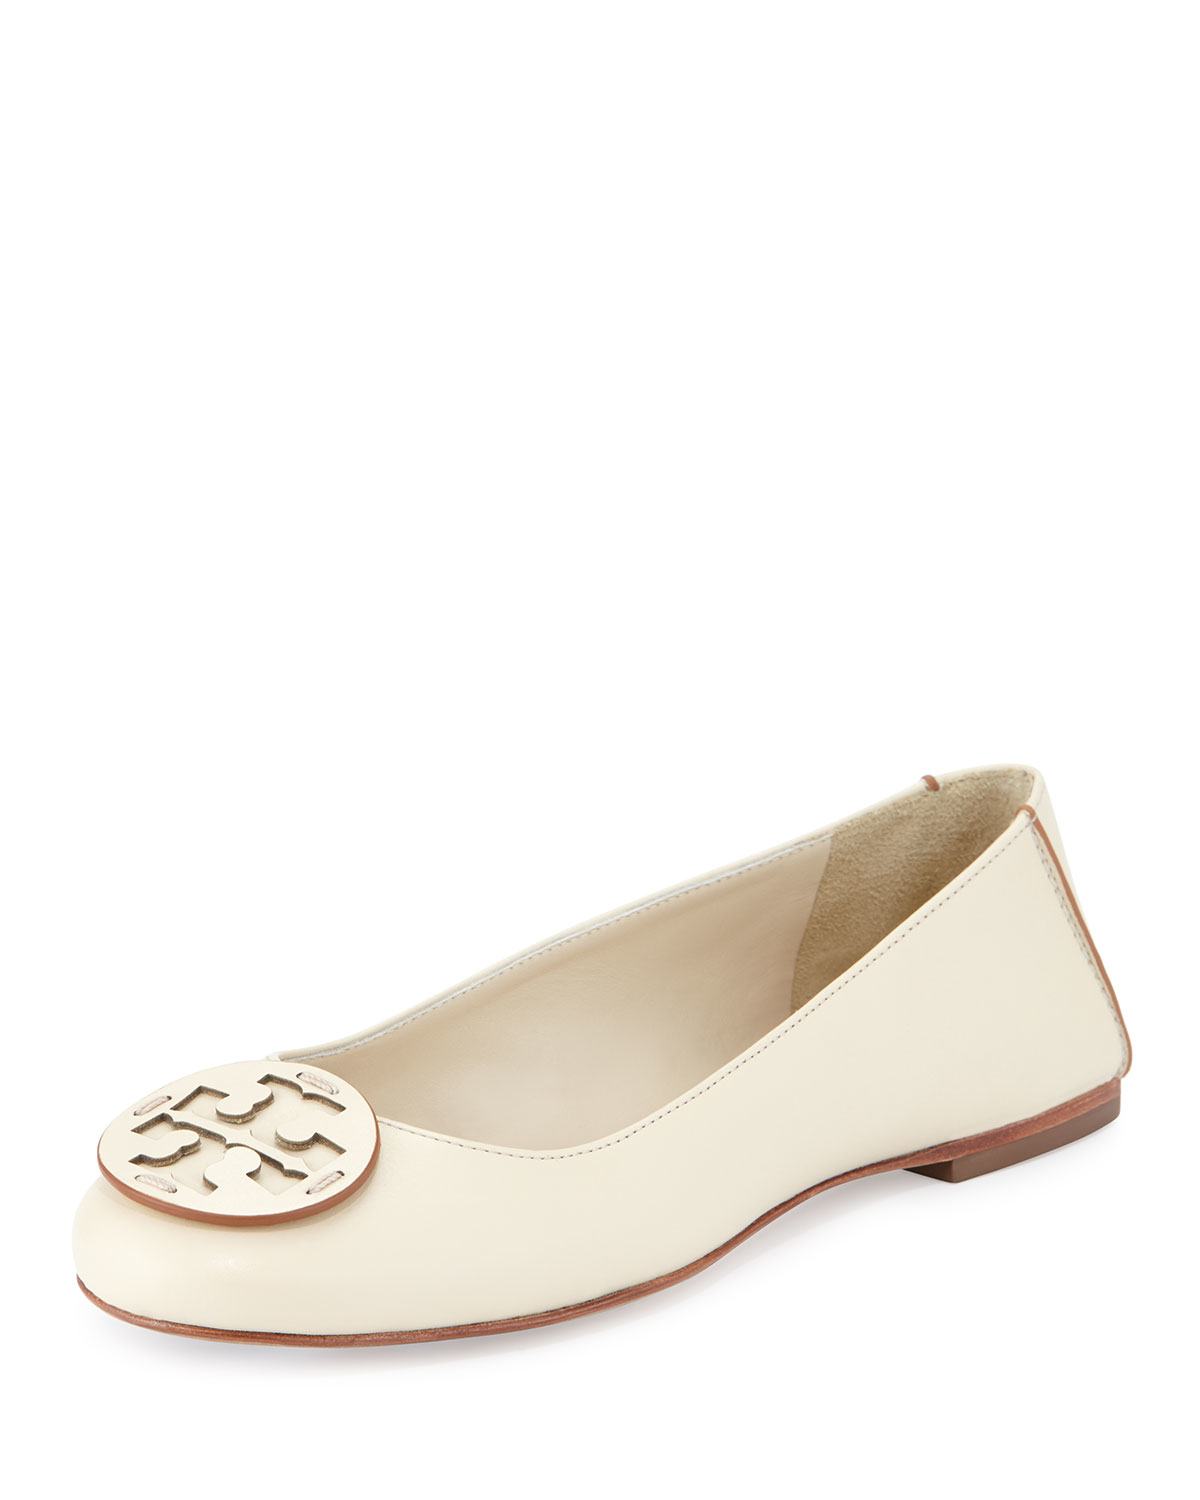 cdb0d9dbf Gallery. Previously sold at: Neiman Marcus · Women's Tory Burch Reva Flats